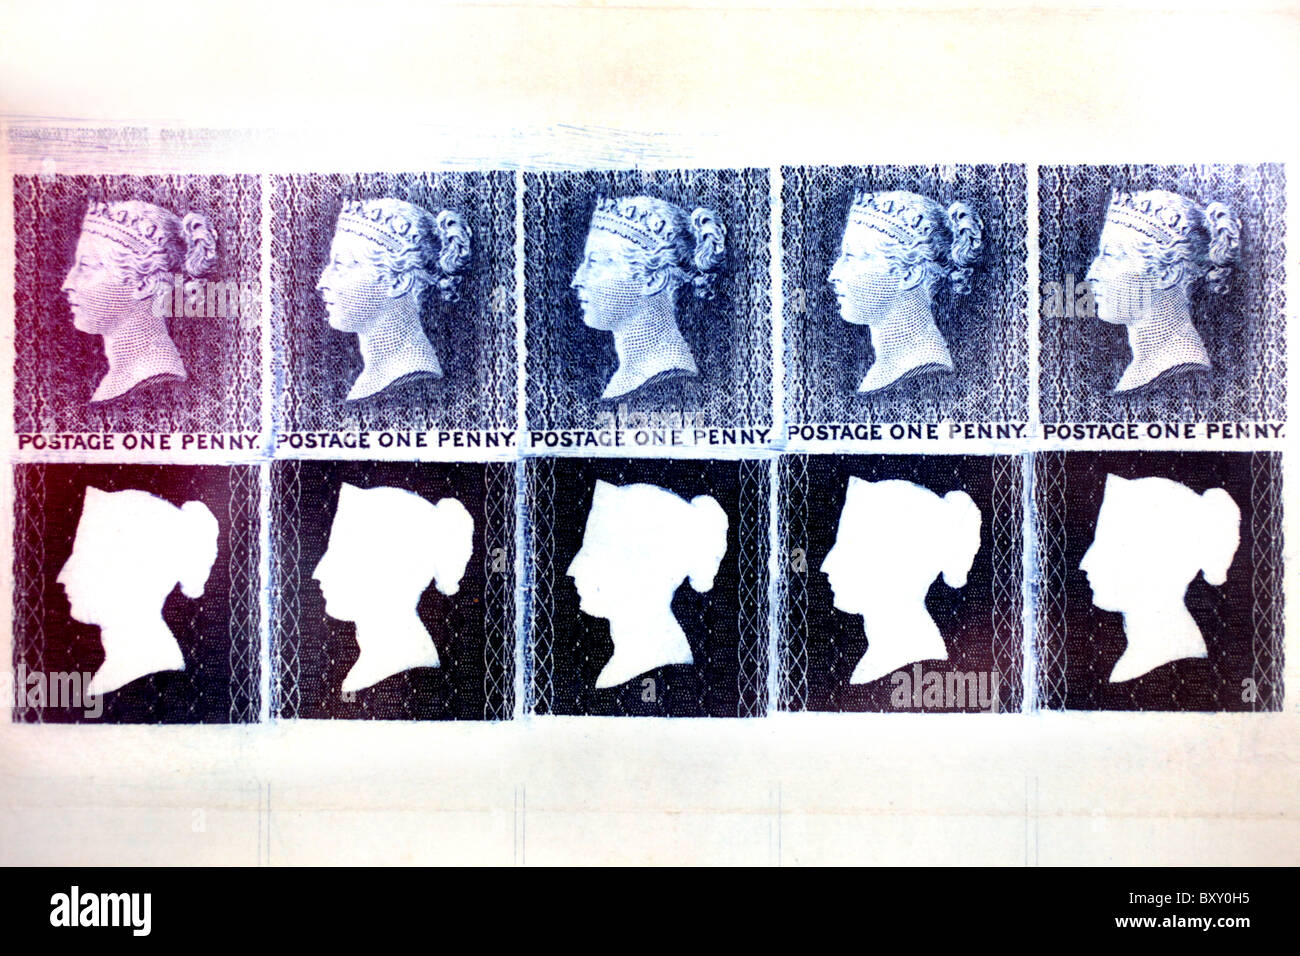 The penny black postage stamp. - Stock Image